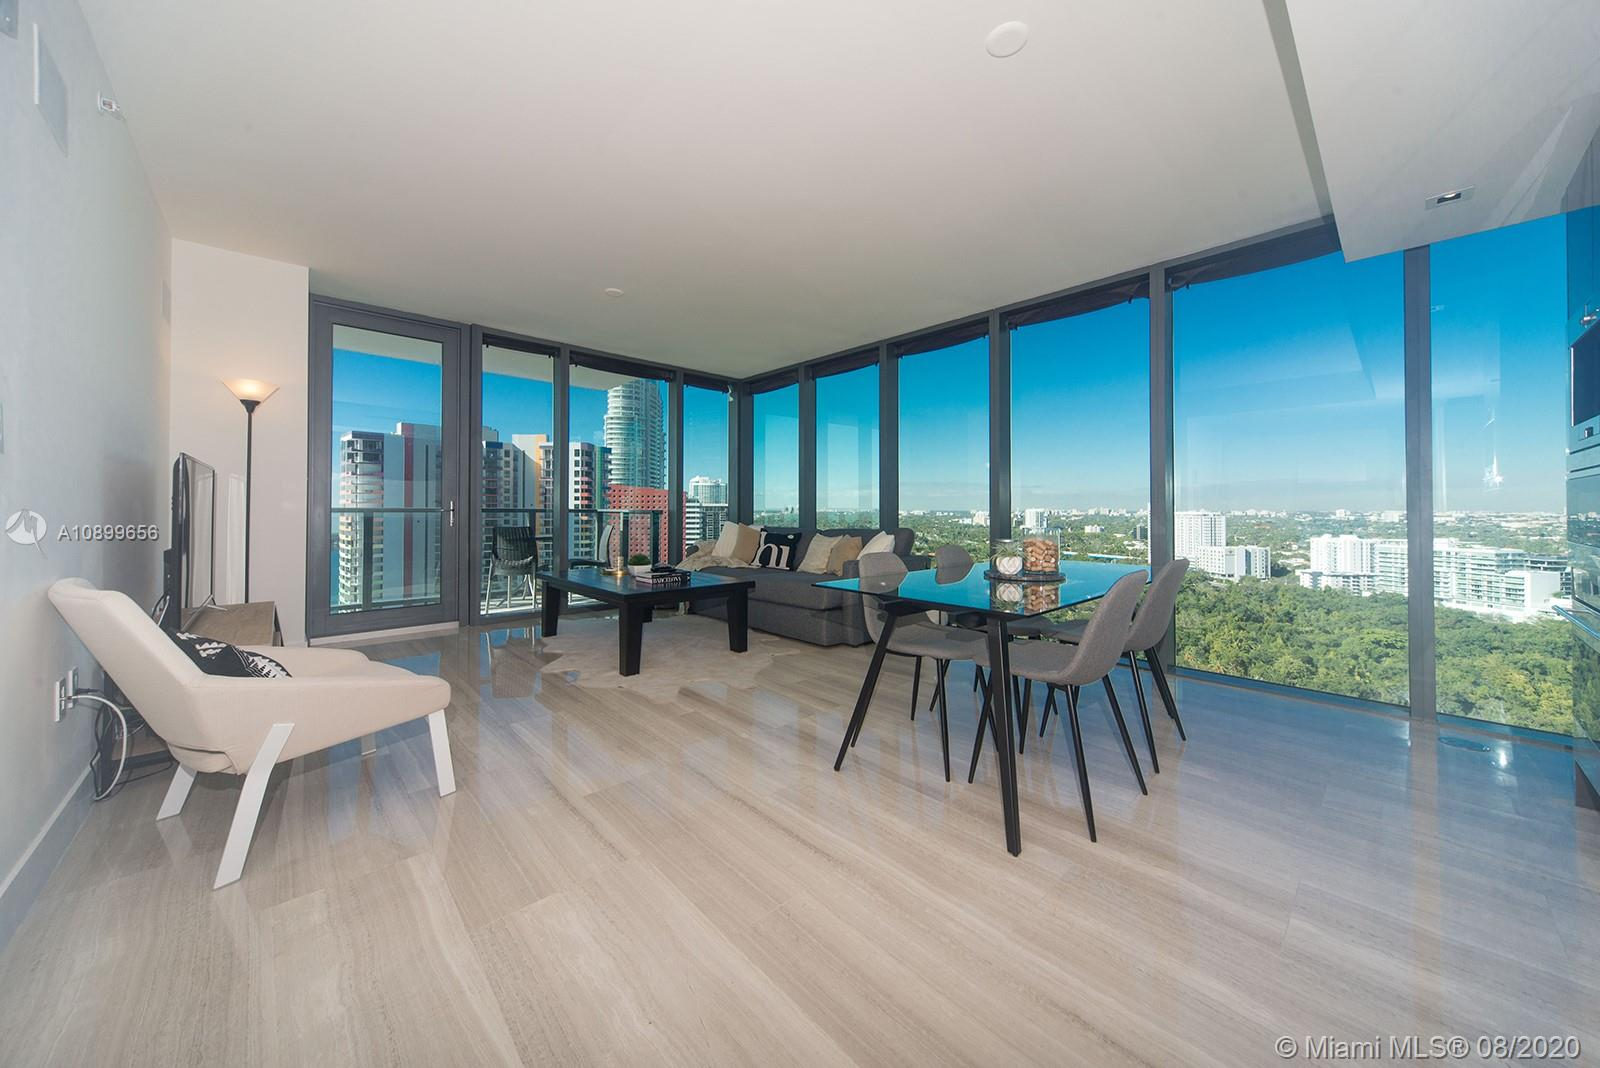 Beautiful & expansive corner unit at the most sought after Echo Brickel.  Conceptually designed by renowned architect Carlos Ott. Featuring foyer, large open living area, integrated audio, video & lighting systems, electric shades in living room & bedroom, open kitchen with Italian custom cabinetry, Subzero/Wolf appliances. Marble floors throughout, floor to ceiling windows, beautiful sunset & sunrise views. BBQ in the balcony. Amenities include a vanishing-edge pool with panoramic views of Biscayne Bay & Key Biscayne State-of-the-art fitness center. This iconic masterpiece is a true 5-star boutique building located in Brickell. Blocks away from luxury shopping and dining at Brickell City Centre, the financial district, easy access to I-95 and Miami Beach, and Key Biscayne.